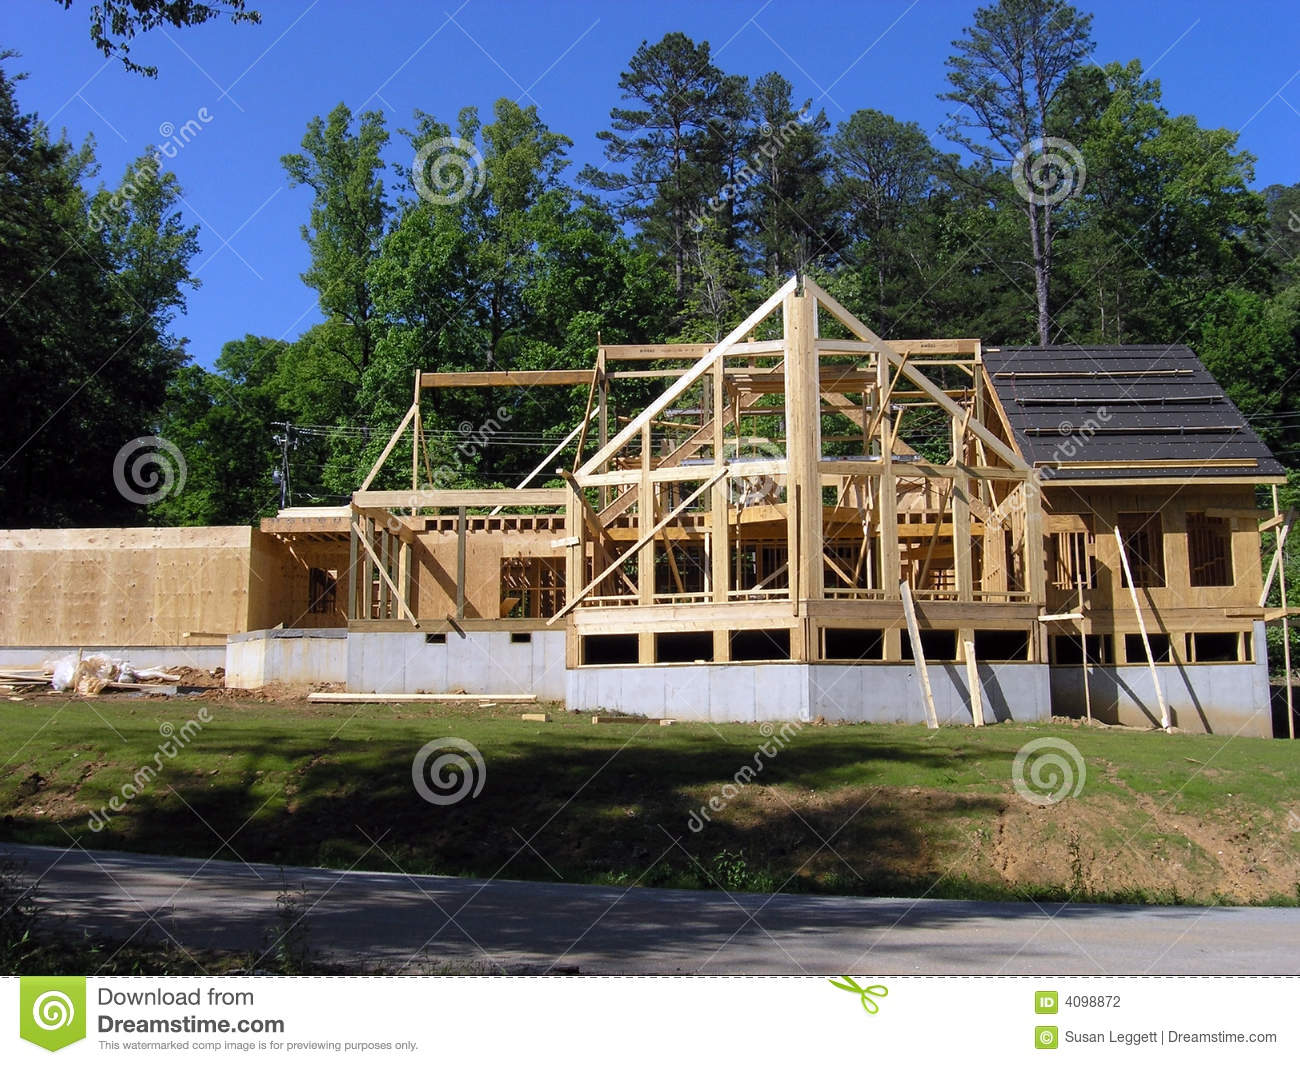 House under construction